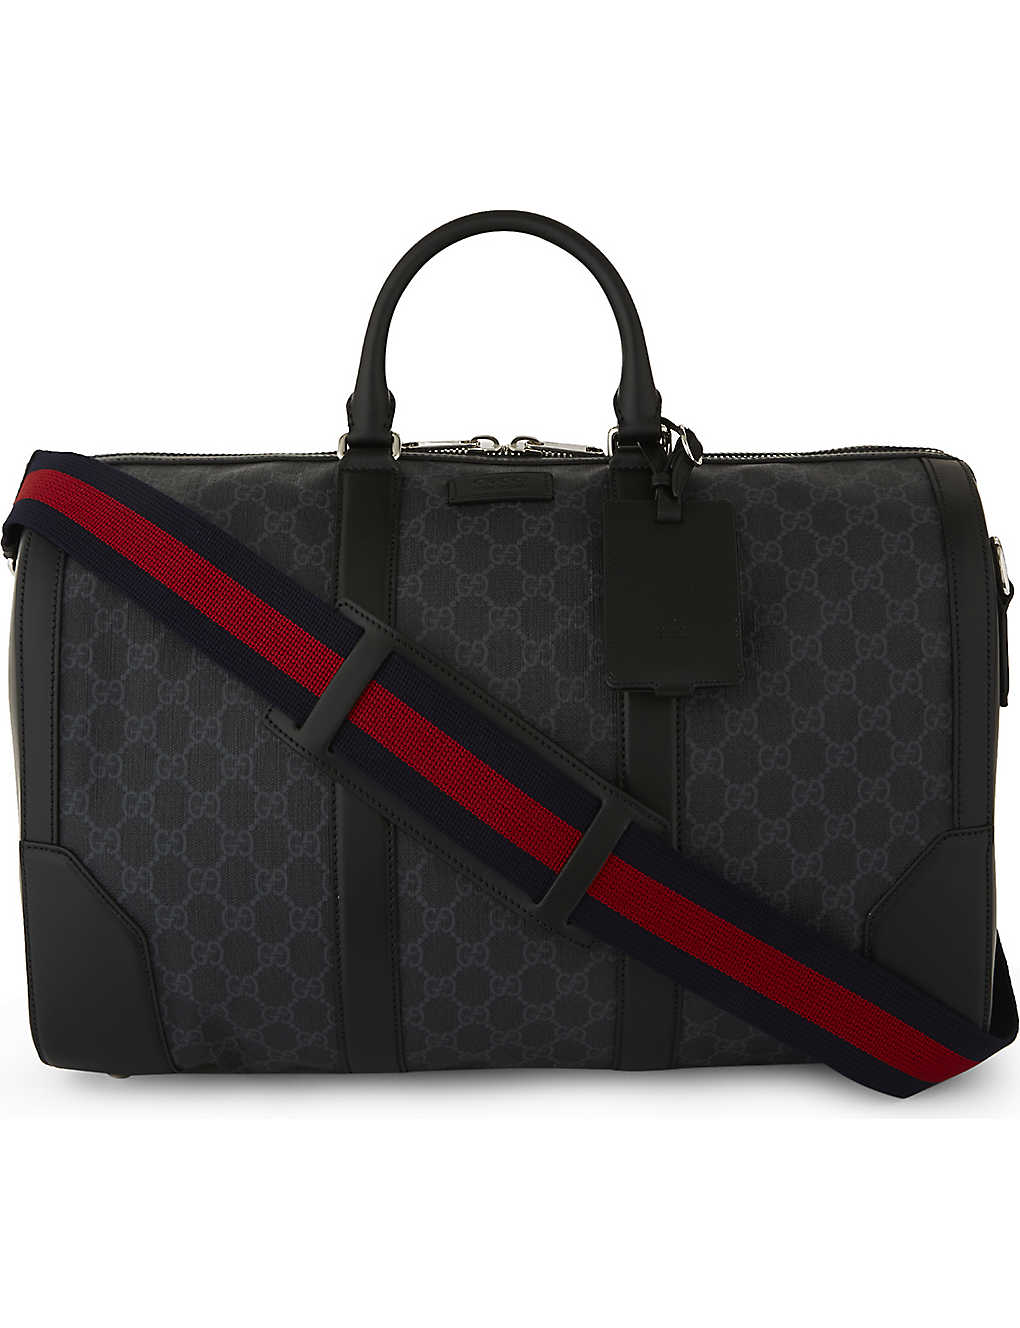 3fdebe39ae6841 GUCCI - Supreme canvas and leather duffle bag | Selfridges.com